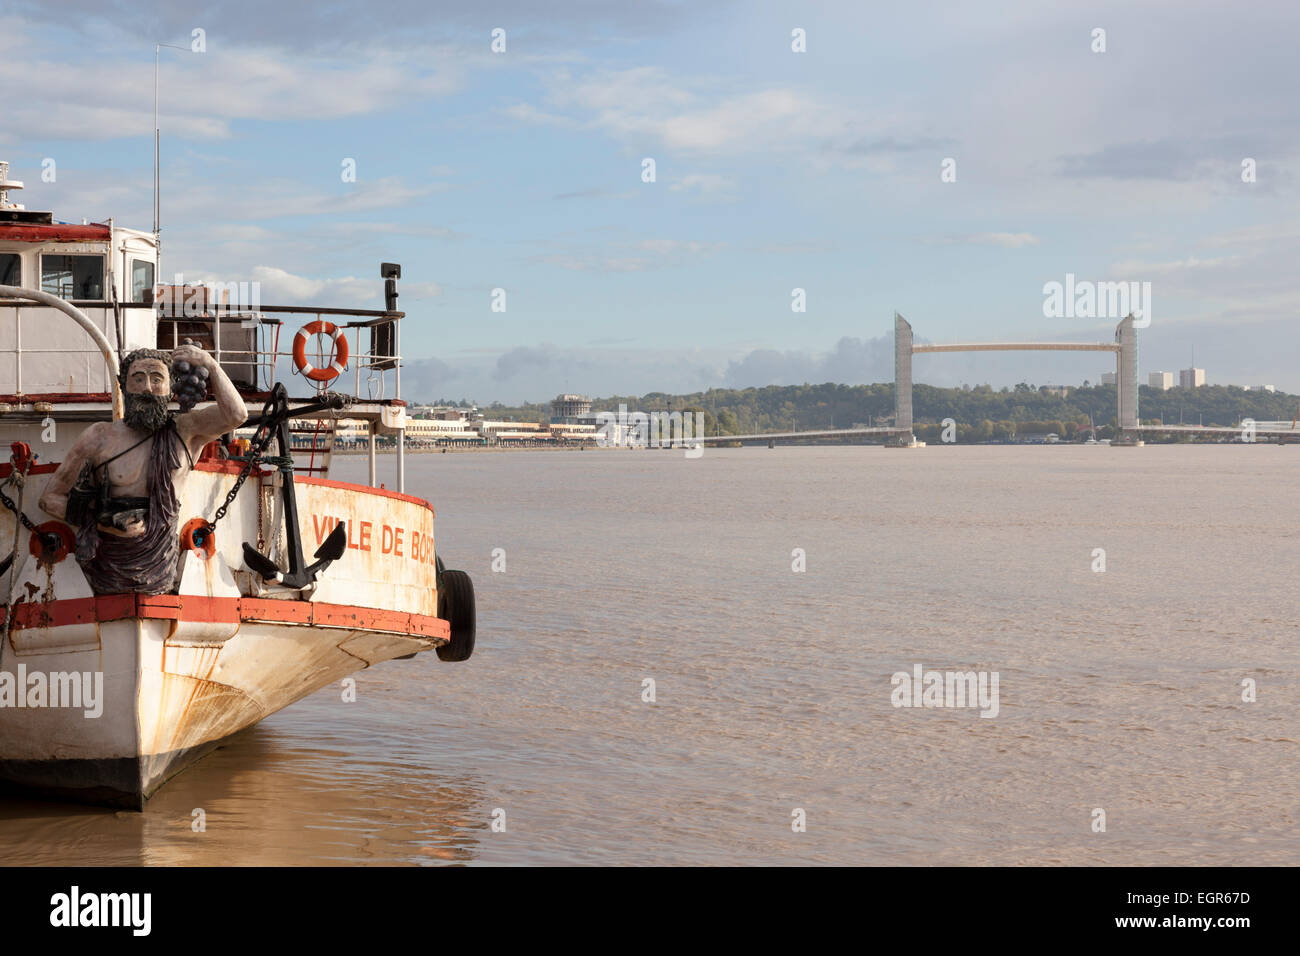 The City of Bordeaux tug boat with the brand new 'J. Chaban Delmas' vertical-lift bridge in the background - Stock Image